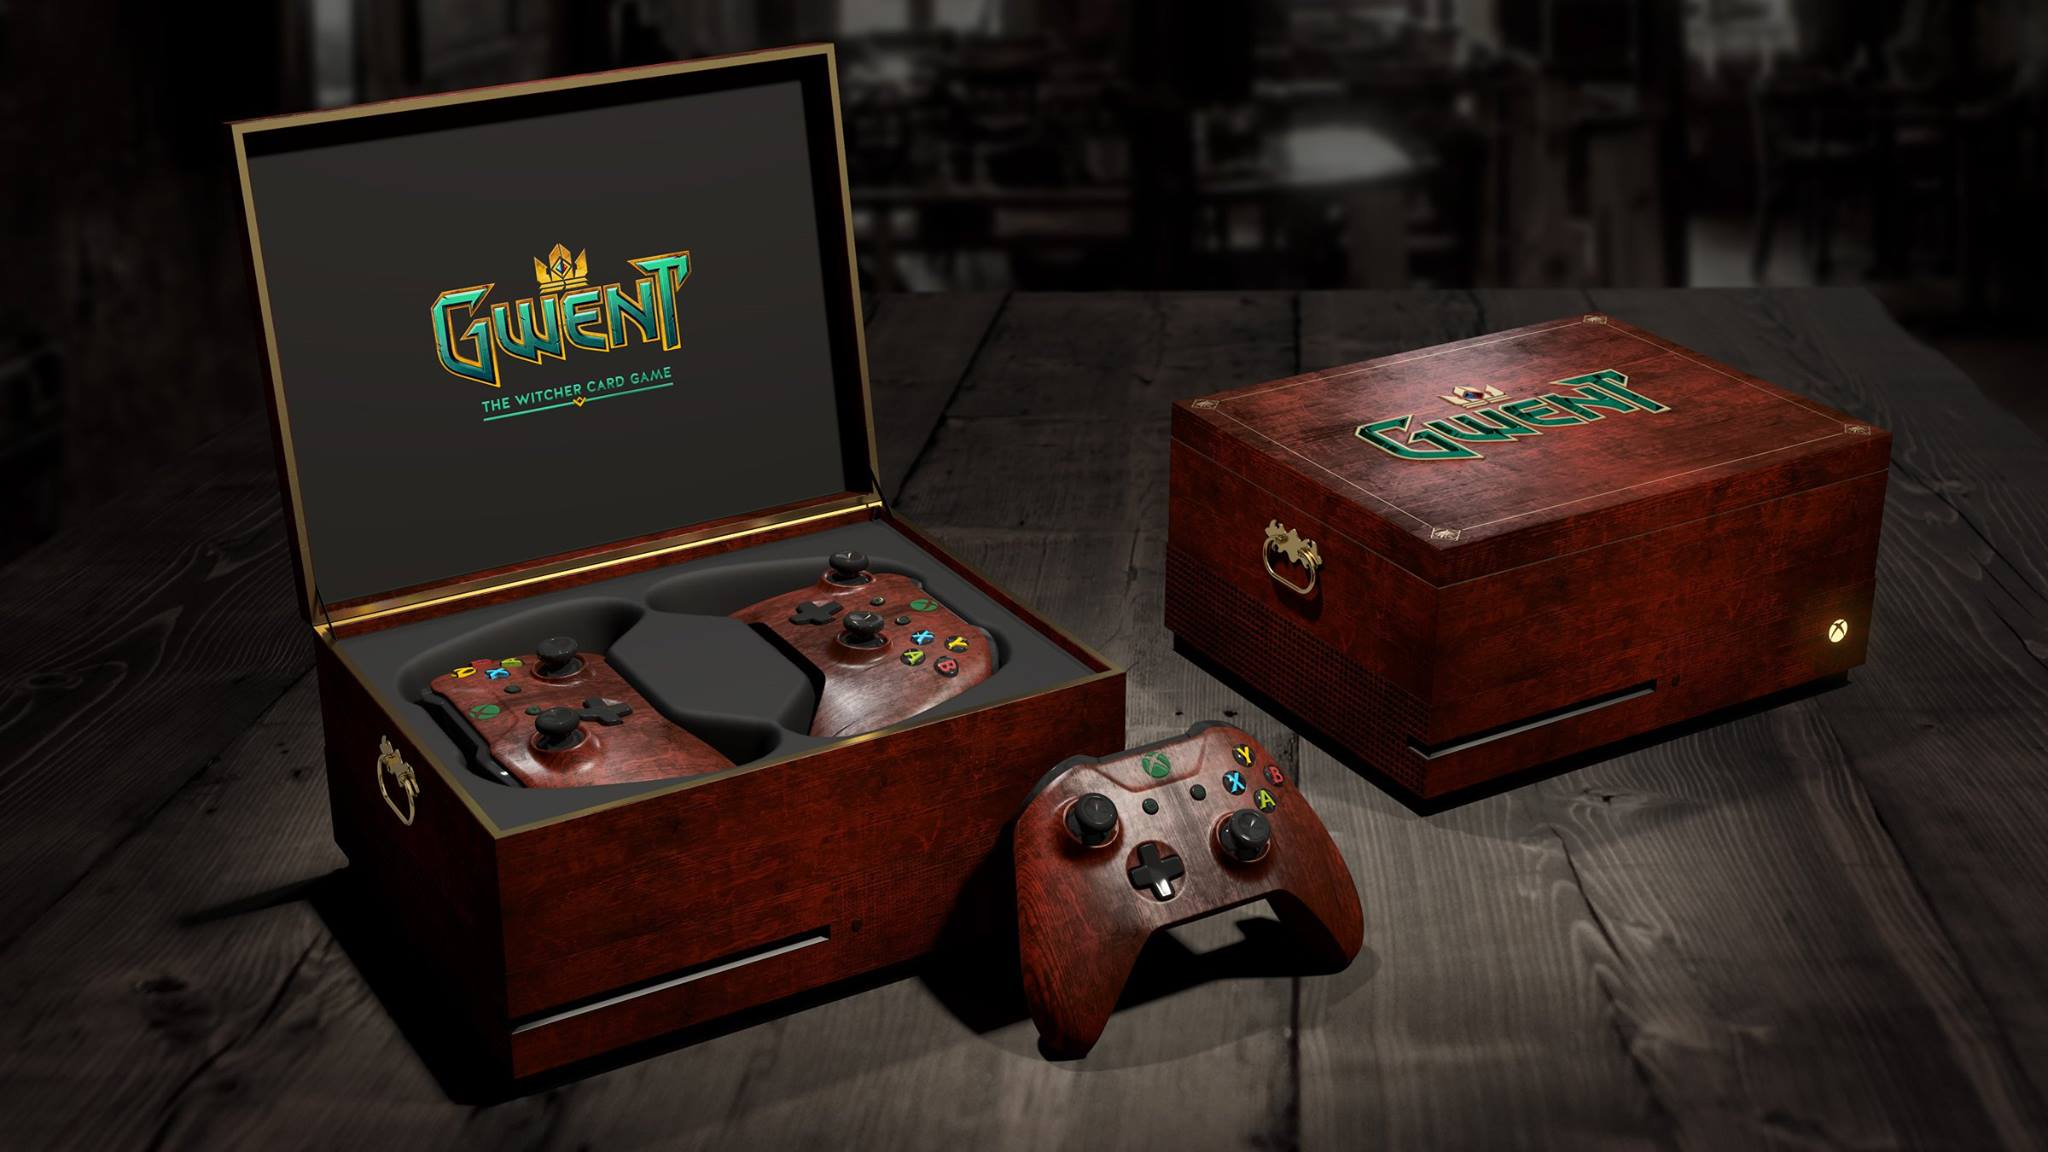 Gwent The Witcher Card Game Themed Xbox One Up For Grabs